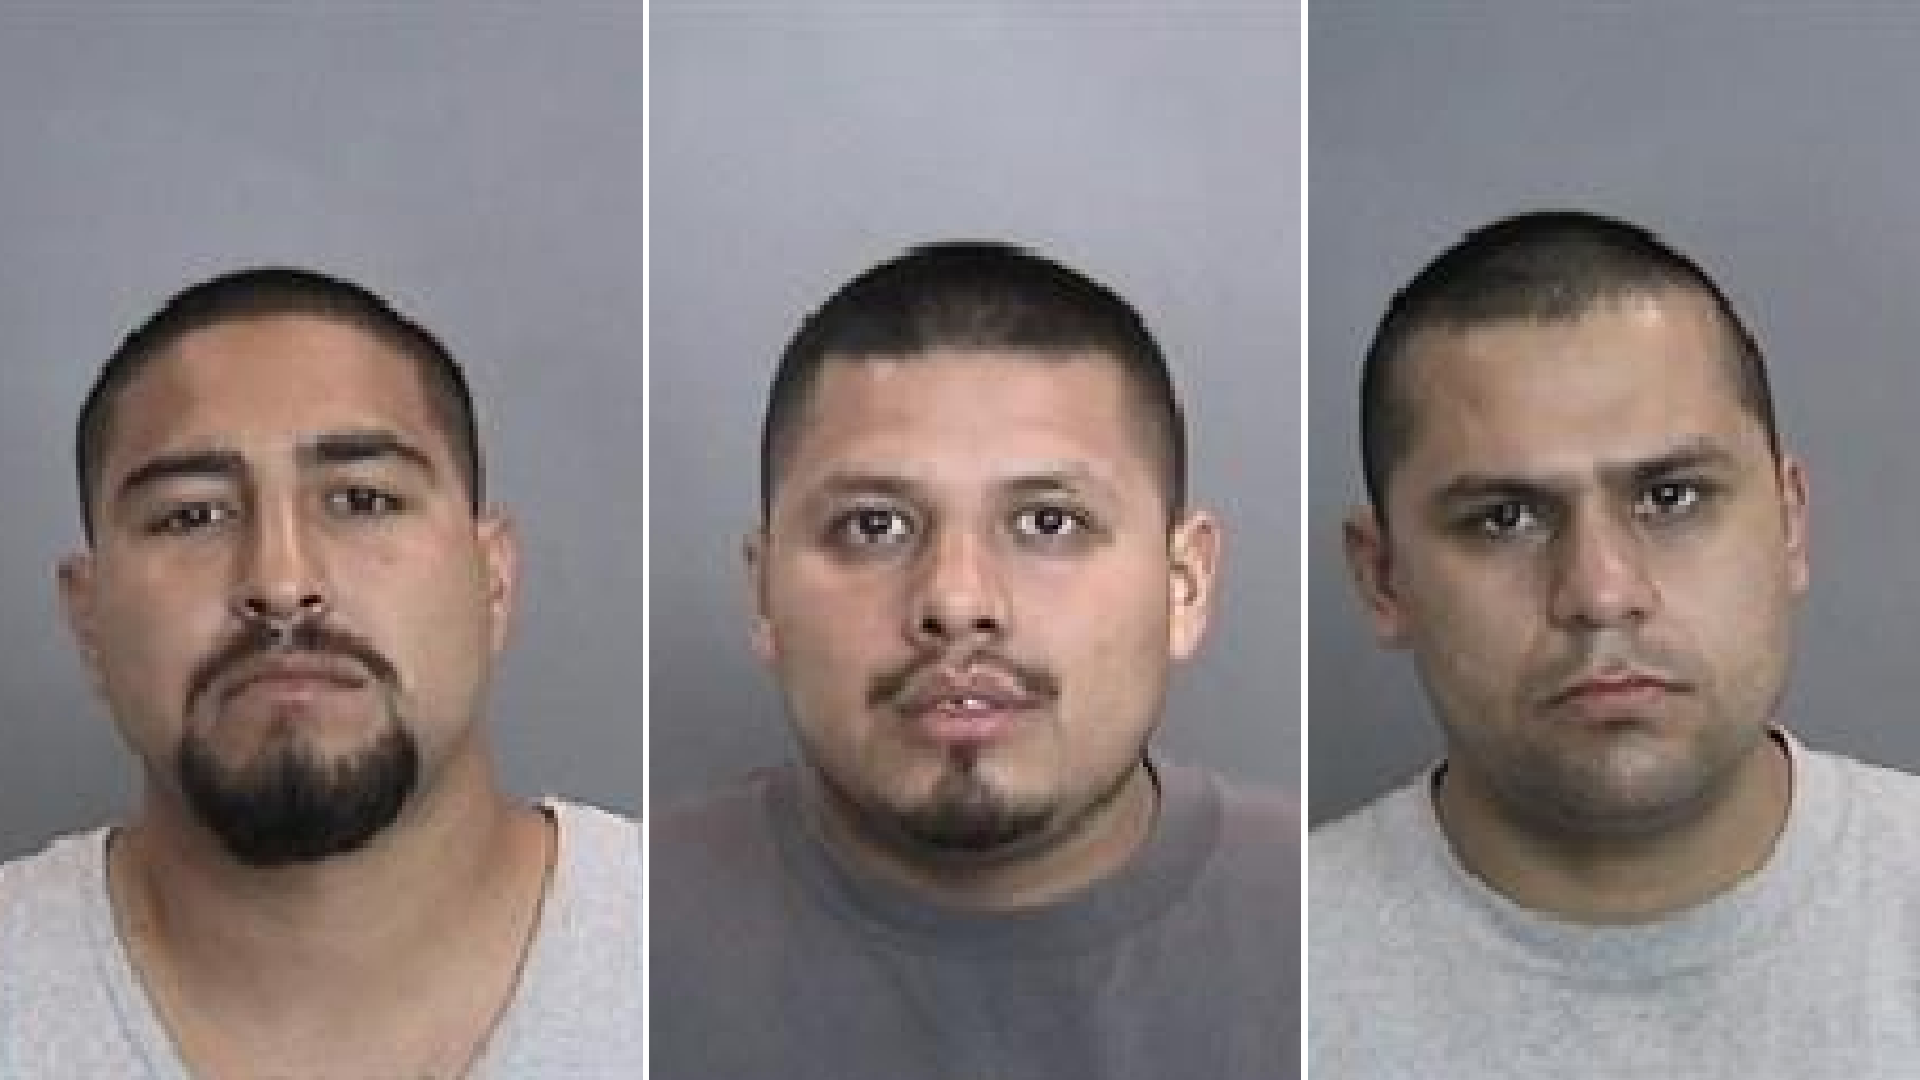 Dominick Sanchez, 27, Jacob Antunez, 24, and Jorge Nolasco, 27, are seen in undated booking photos provided by the Anaheim Police Department on April 16, 2021.